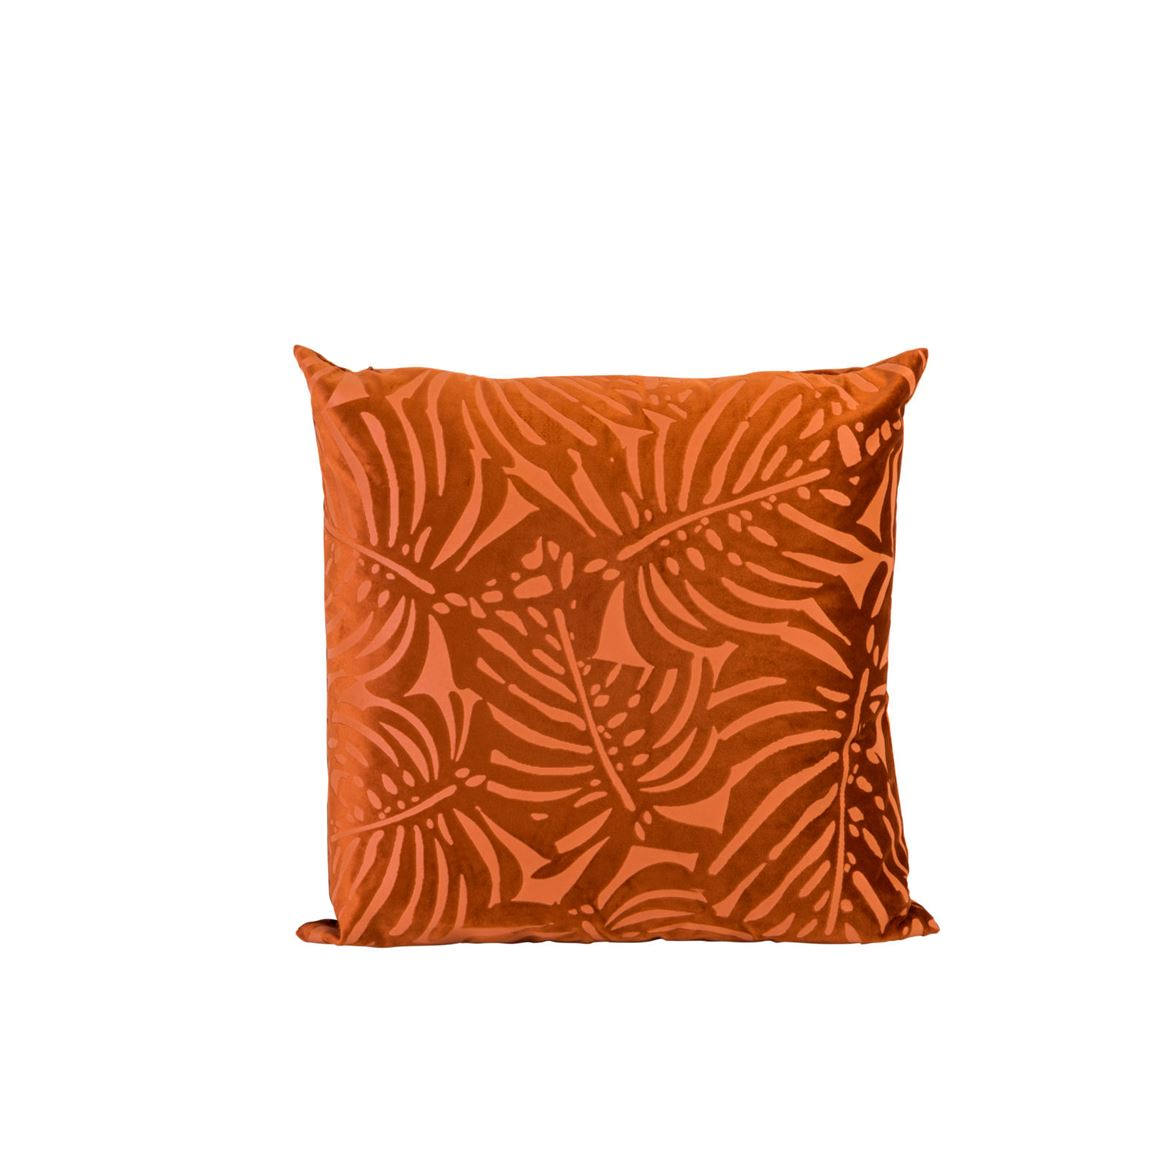 EXOTICO Kissen Orange B 45 x L 45 cm_exotico-kissen-orange-b-45-x-l-45-cm